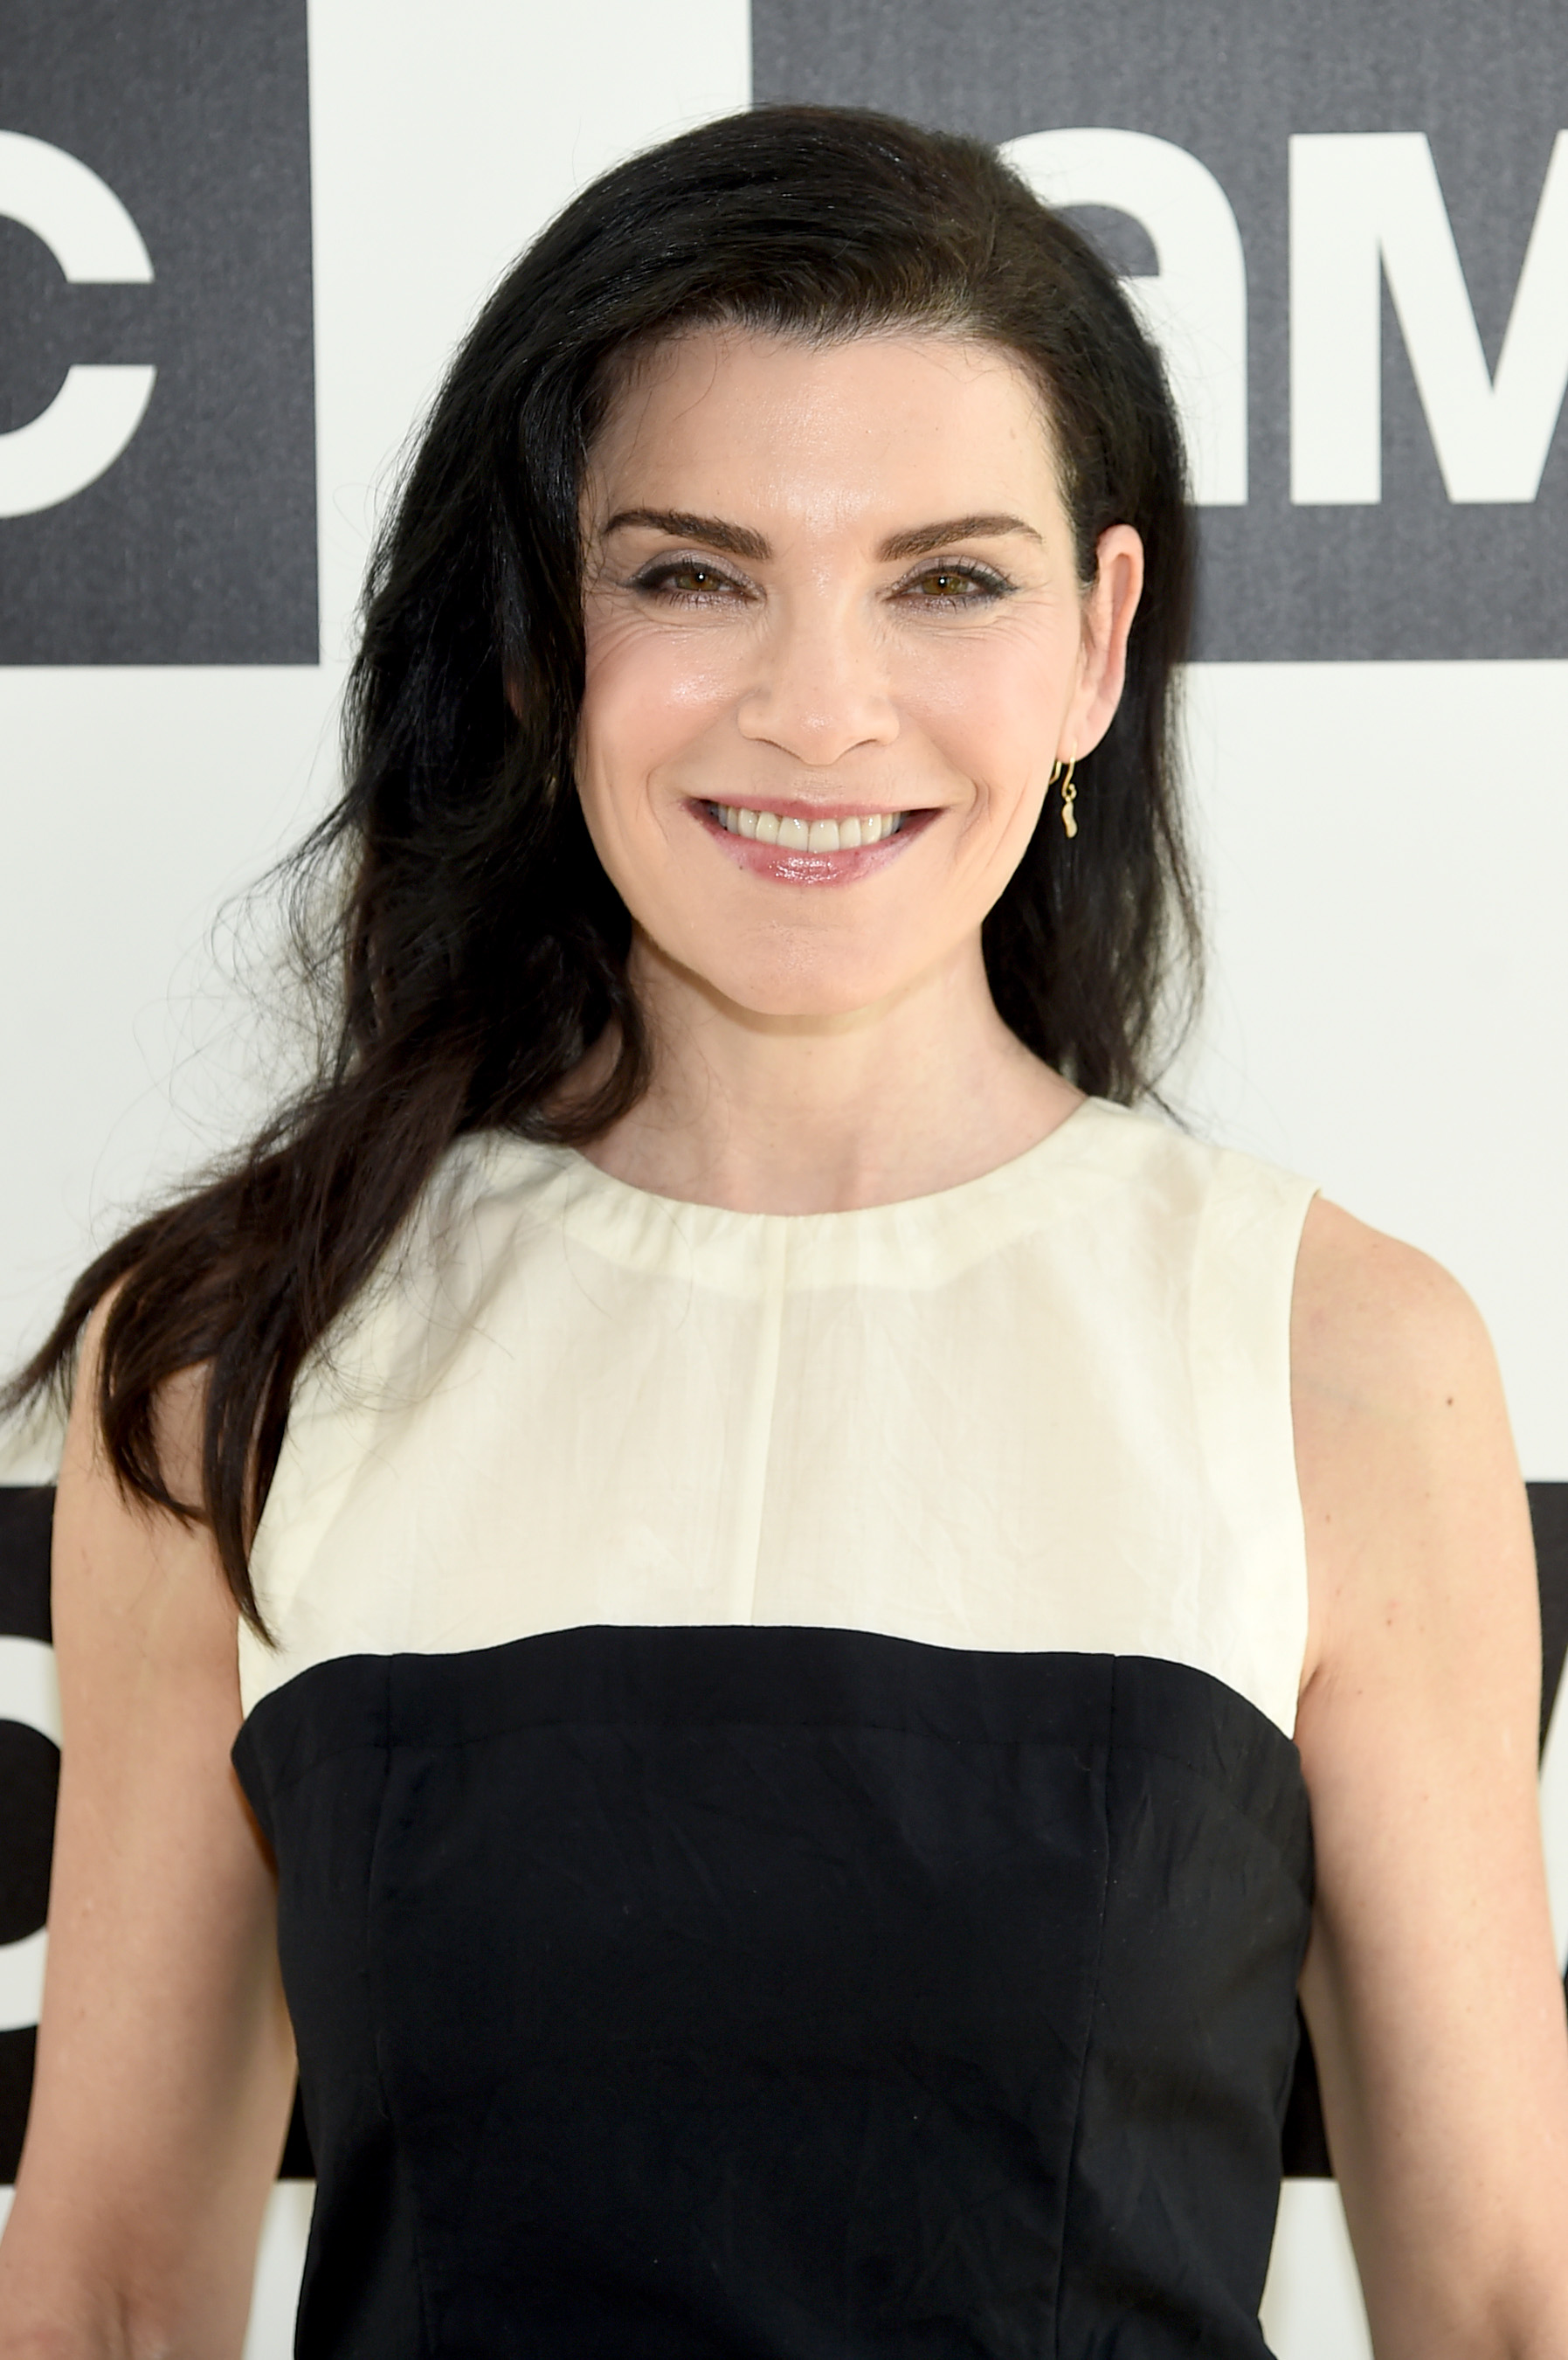 Actor Julianna Margulies attends the AMC Summit at Public Hotel on June 20, 2018 in New York City.